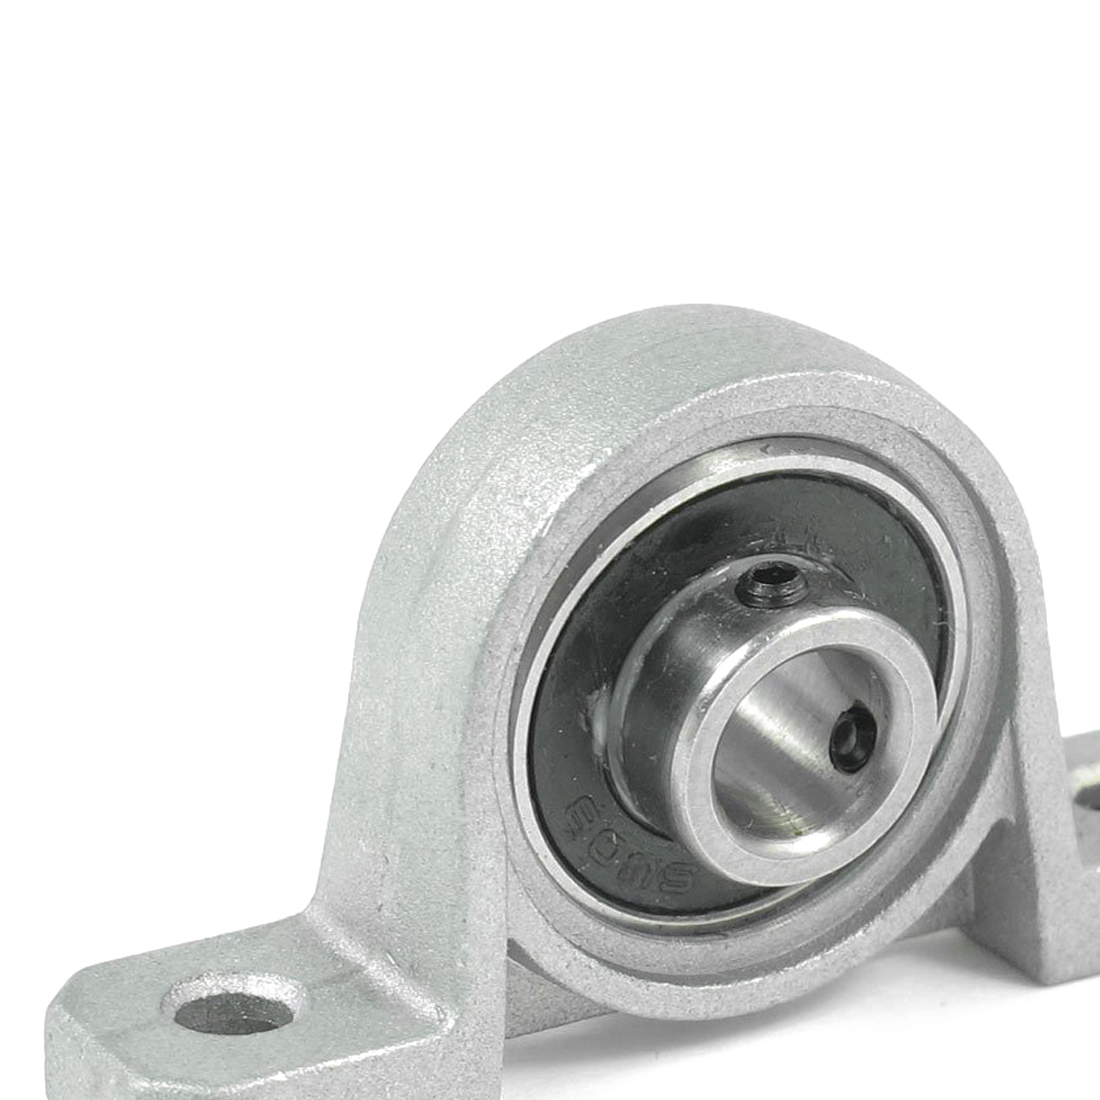 this bearing is a pillow block bearing you can adjust or replace the bearing easily the bearing has a wide inner ring with two set screws